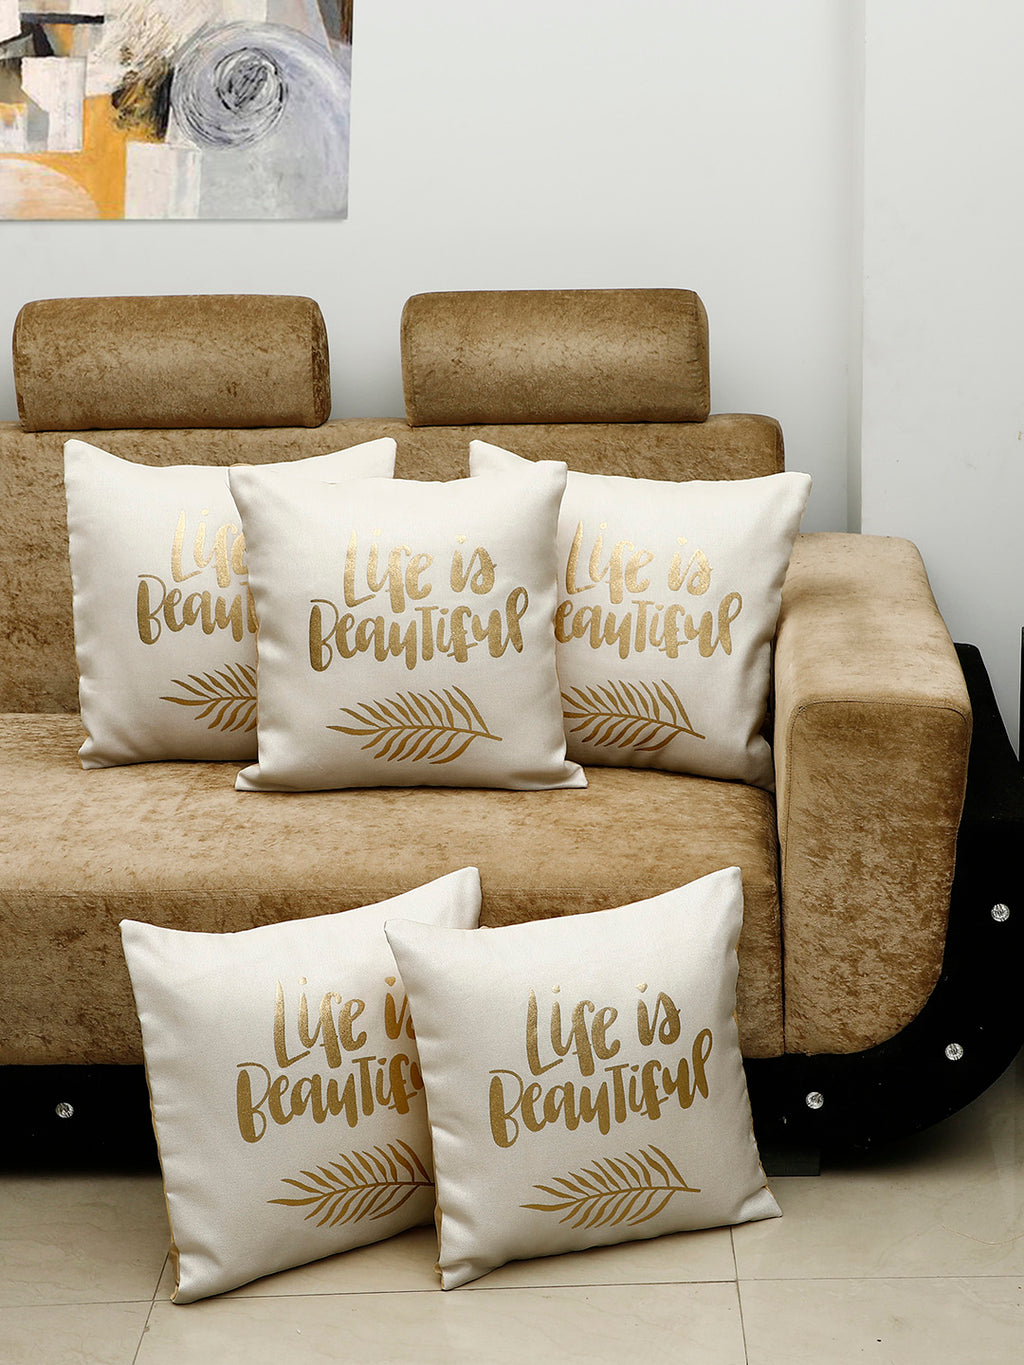 Detec™ Hosta Beige Color 16 x 16 inches Golden Printed Cushion Cover (Set of 5)